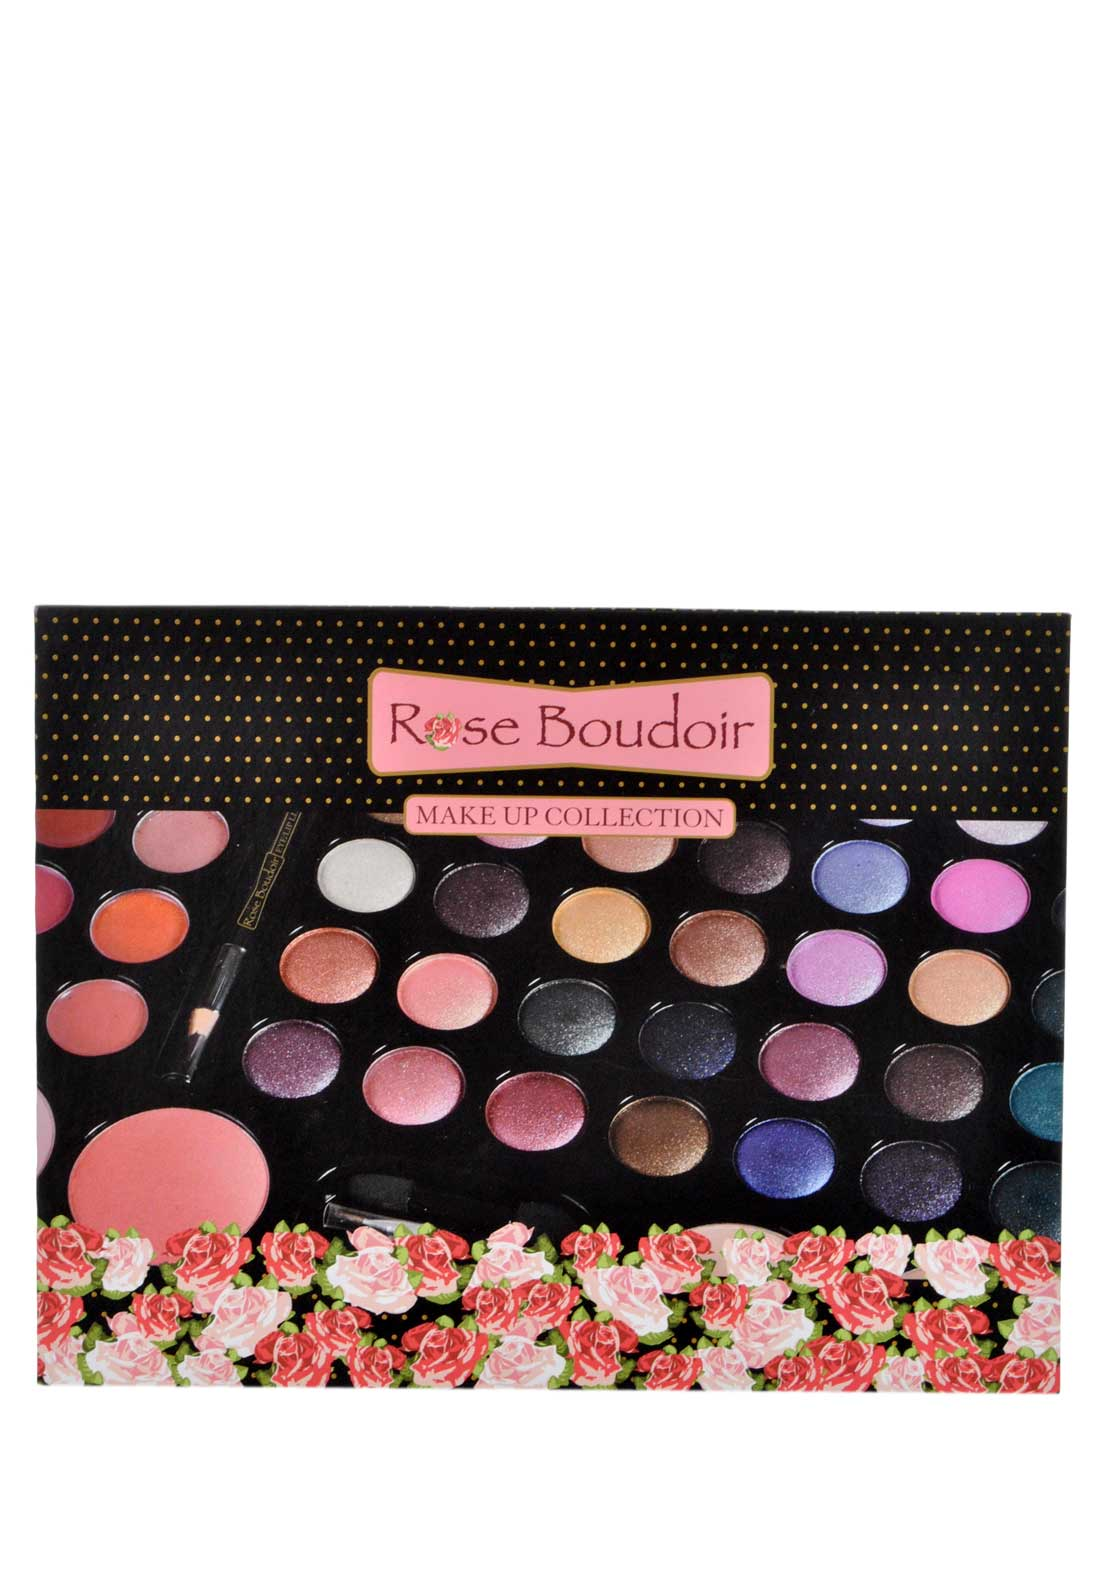 Rose Boudoir Make Up Collection